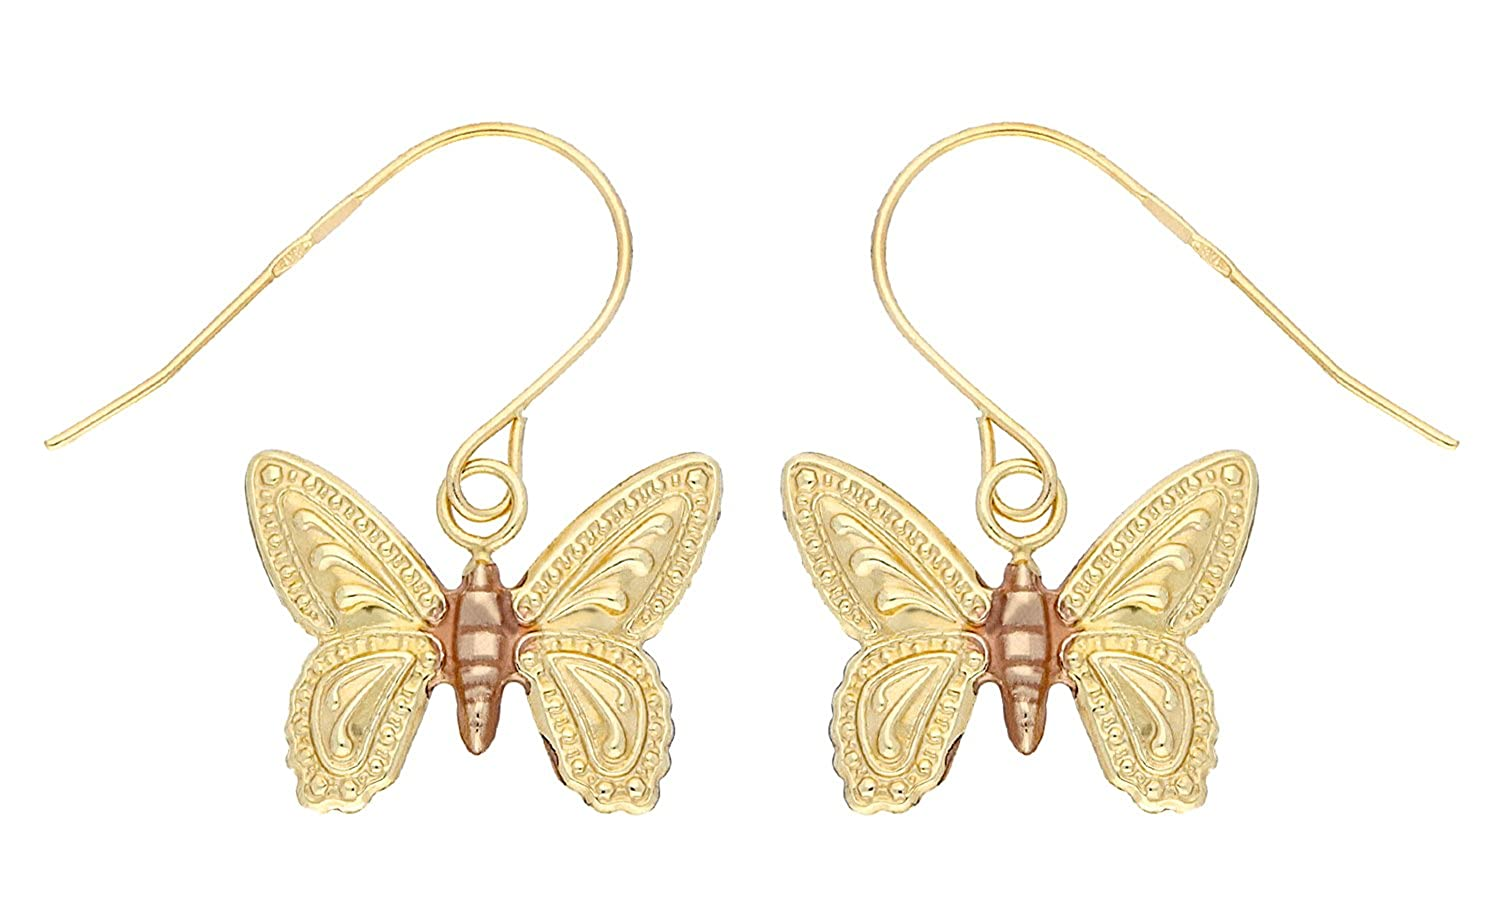 Adara 9 ct Yellow/Red/White Gold Diamond Cut Butterfly Drop Earrings